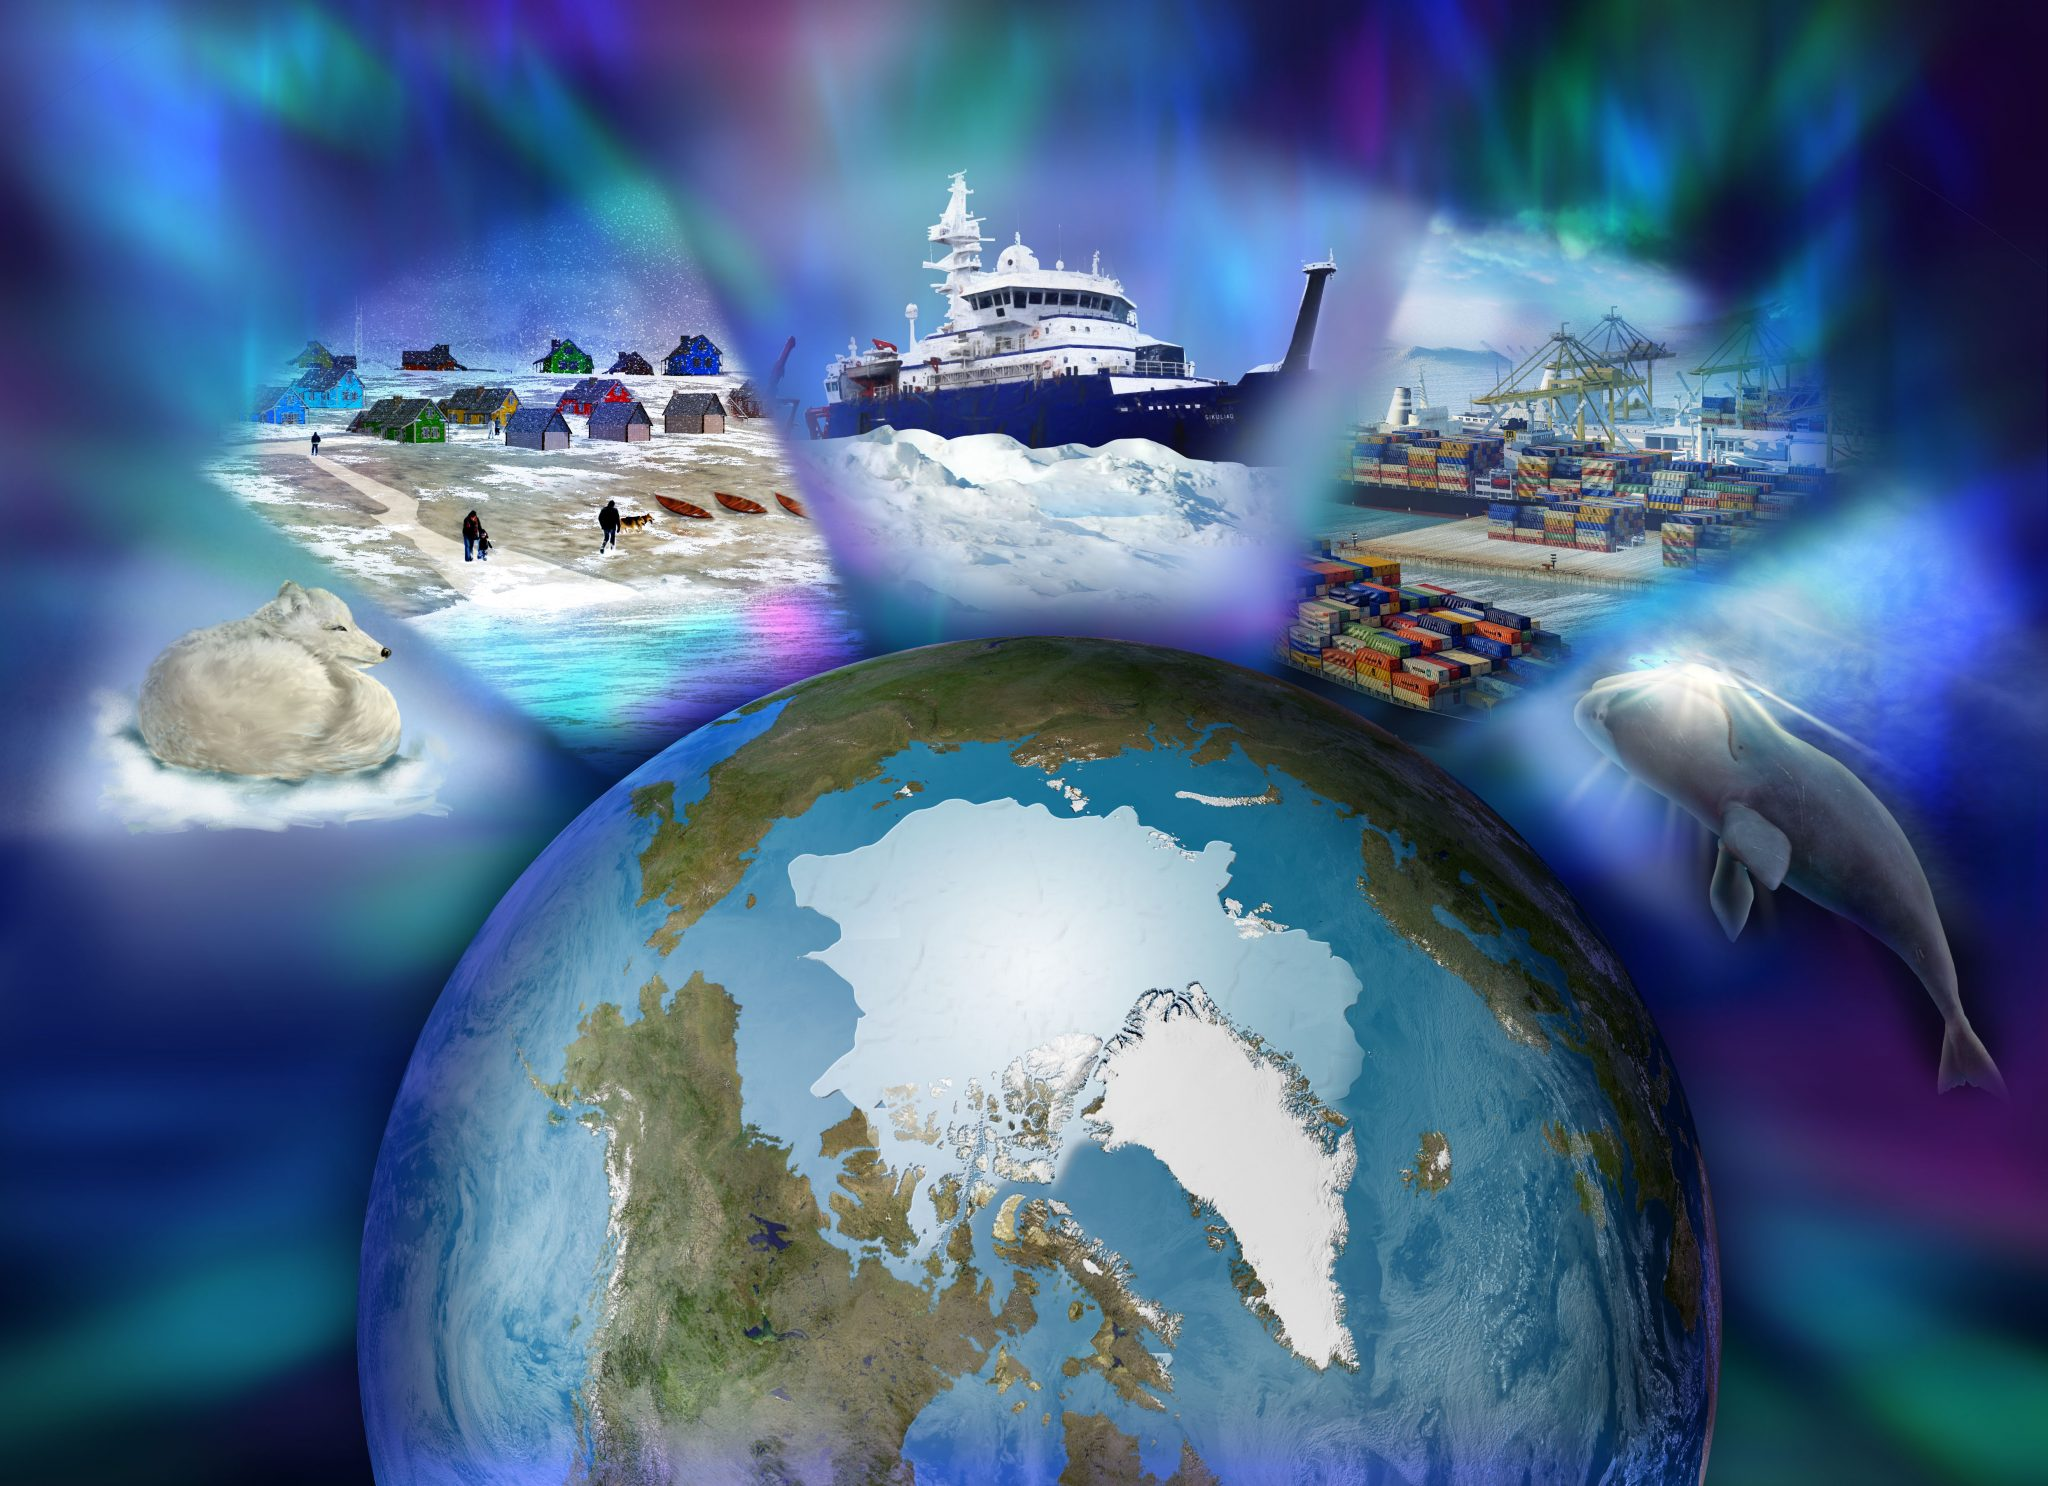 Science illustration of NSF research in the Arctic, by Nicolle R. Fuller, SayoStudio